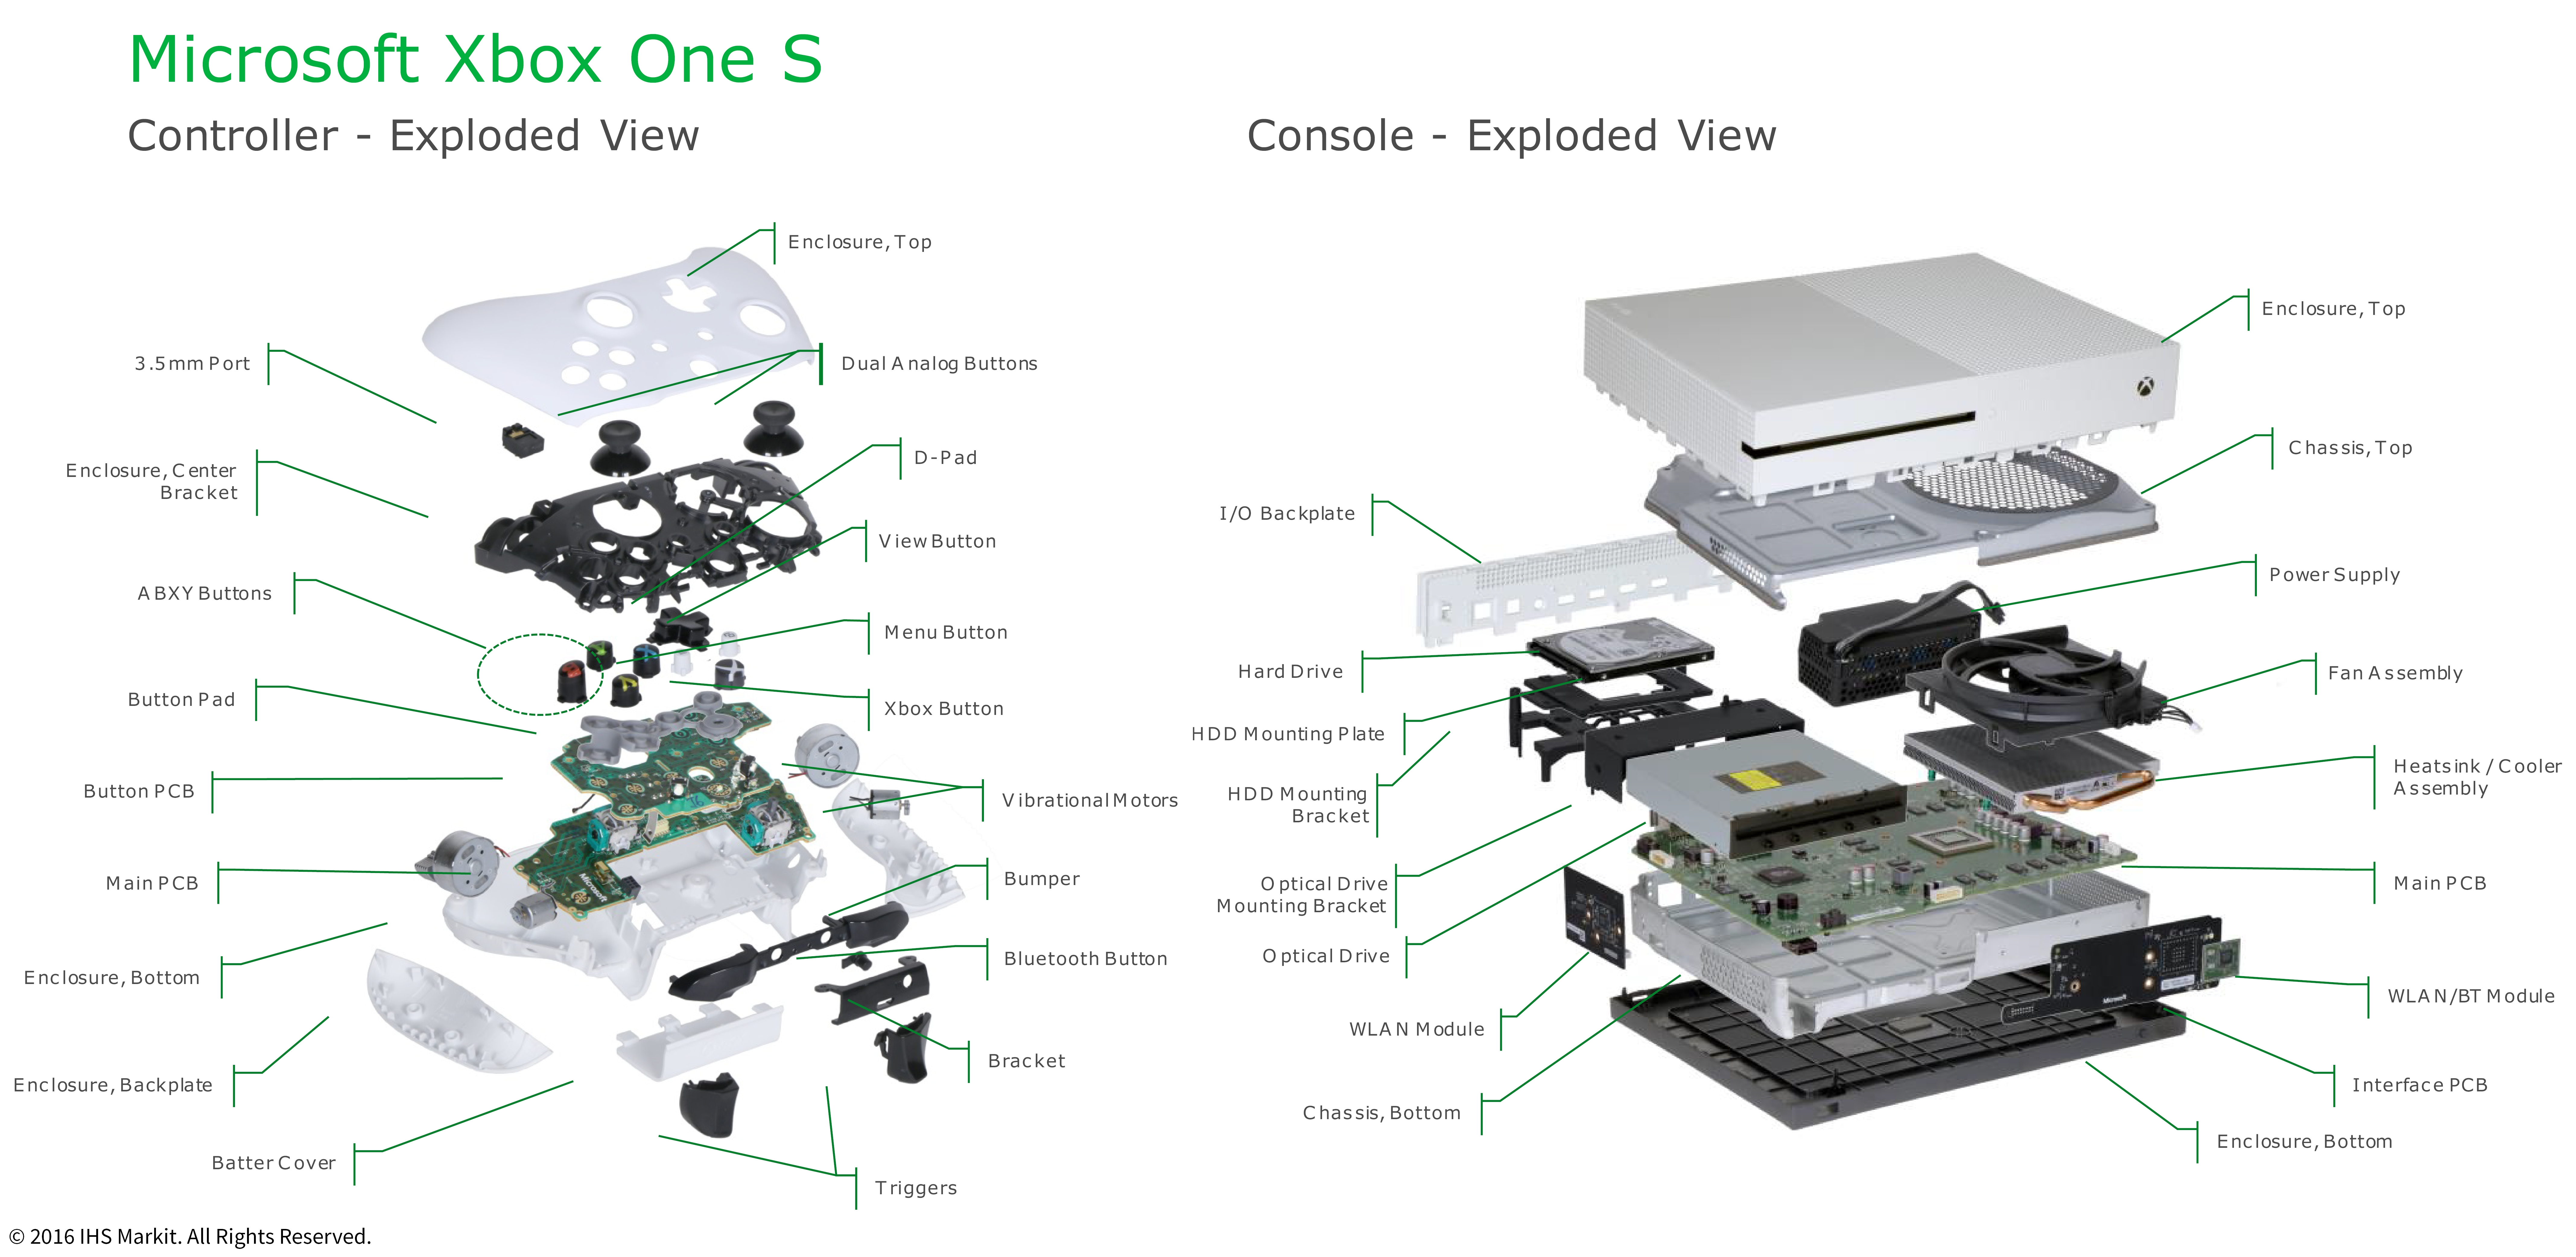 Ihs Markit Teardown Analysis  Microsoft U2019s Xbox One S Brings Significant Value Gains With Minimal